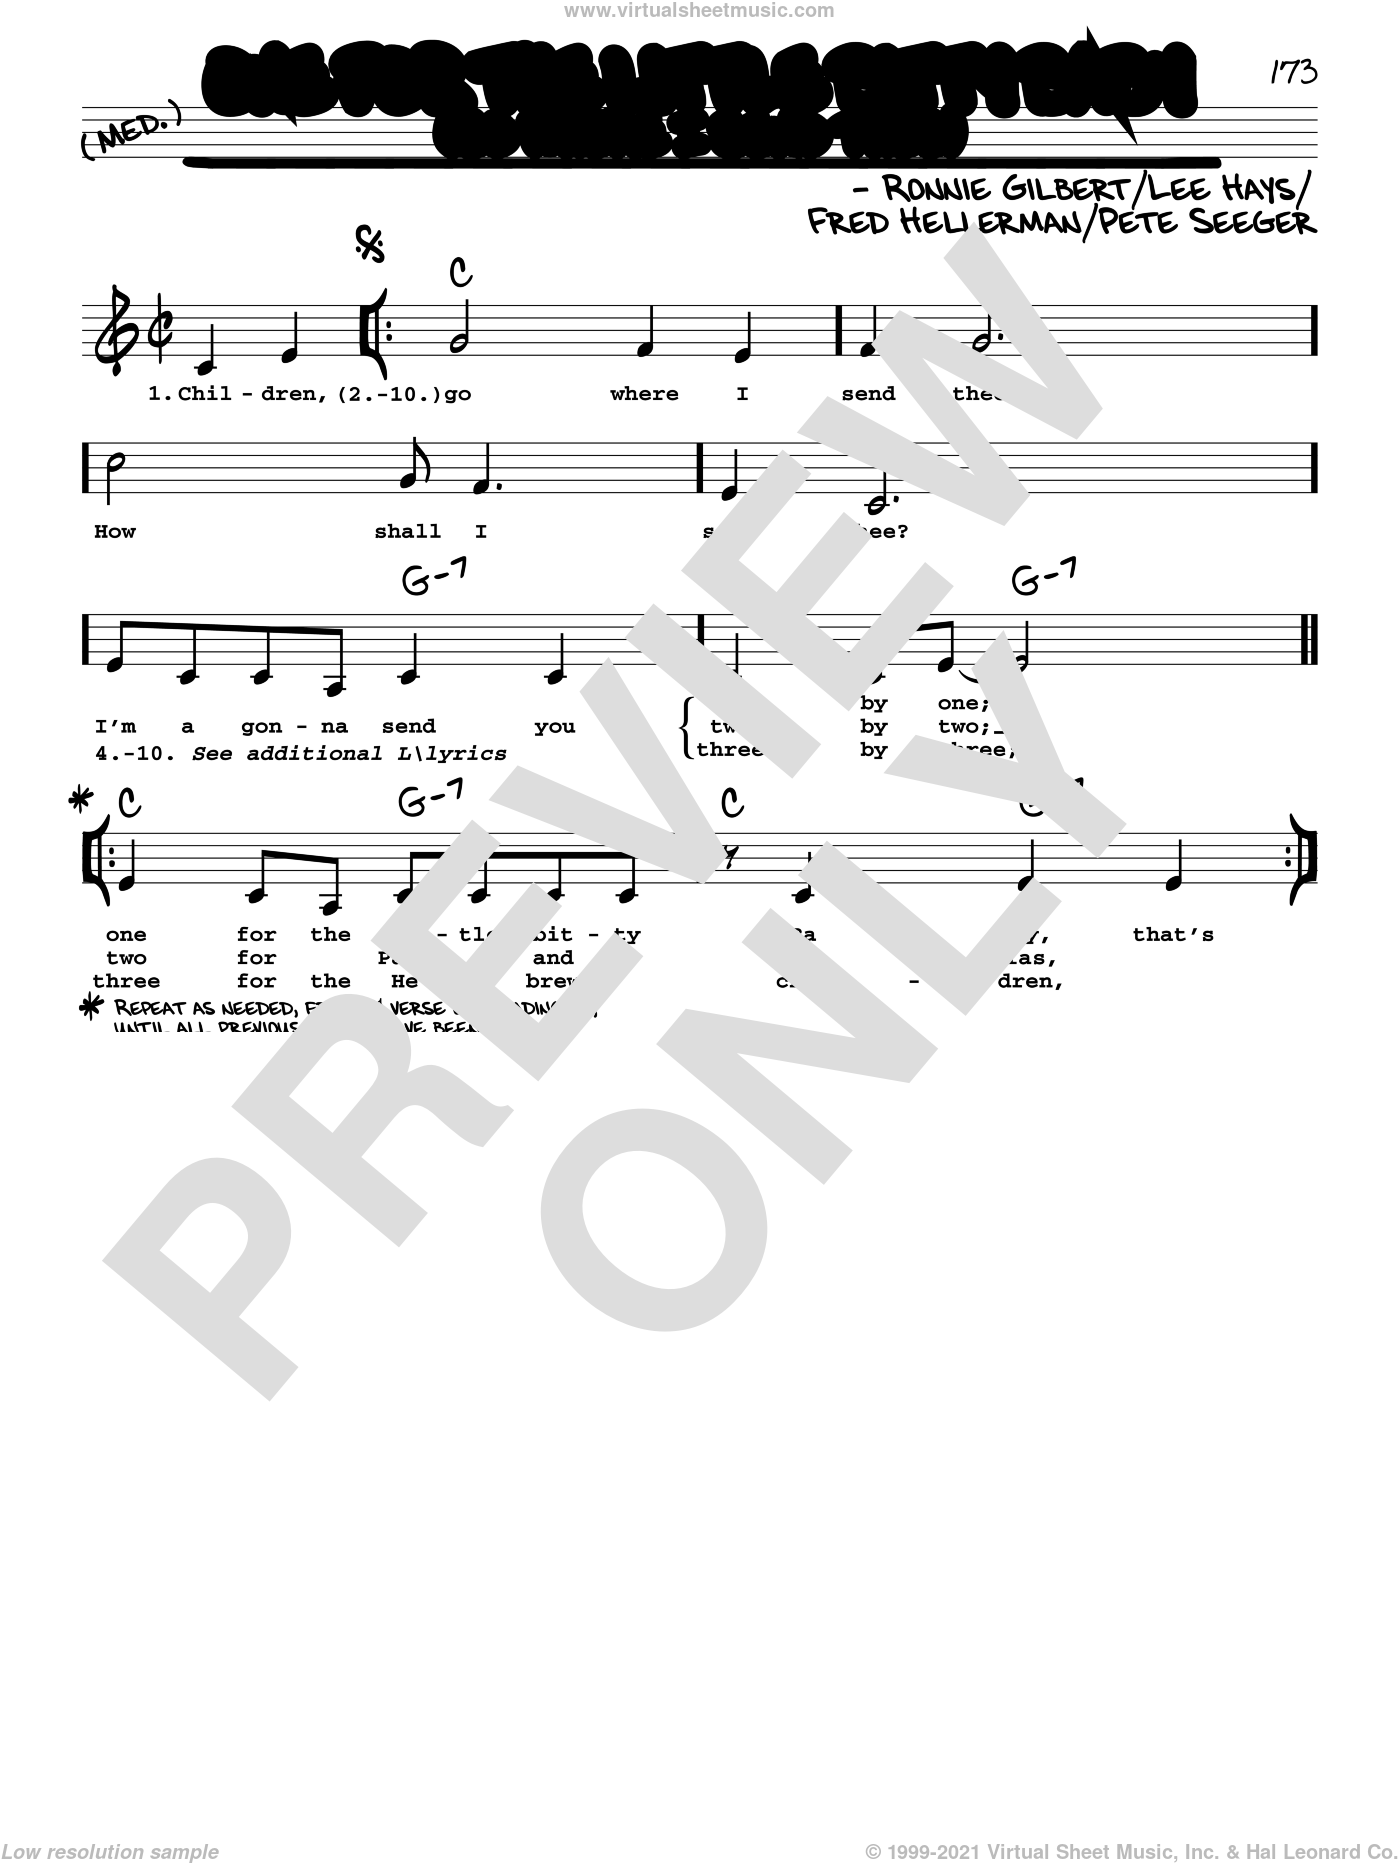 One For The Little Bitty Baby (Go Where I Send Thee) sheet music for voice and other instruments (real book with lyrics) by Ronnie Gilbert, Fred Hellerman, Lee Hays and Pete Seeger, intermediate skill level